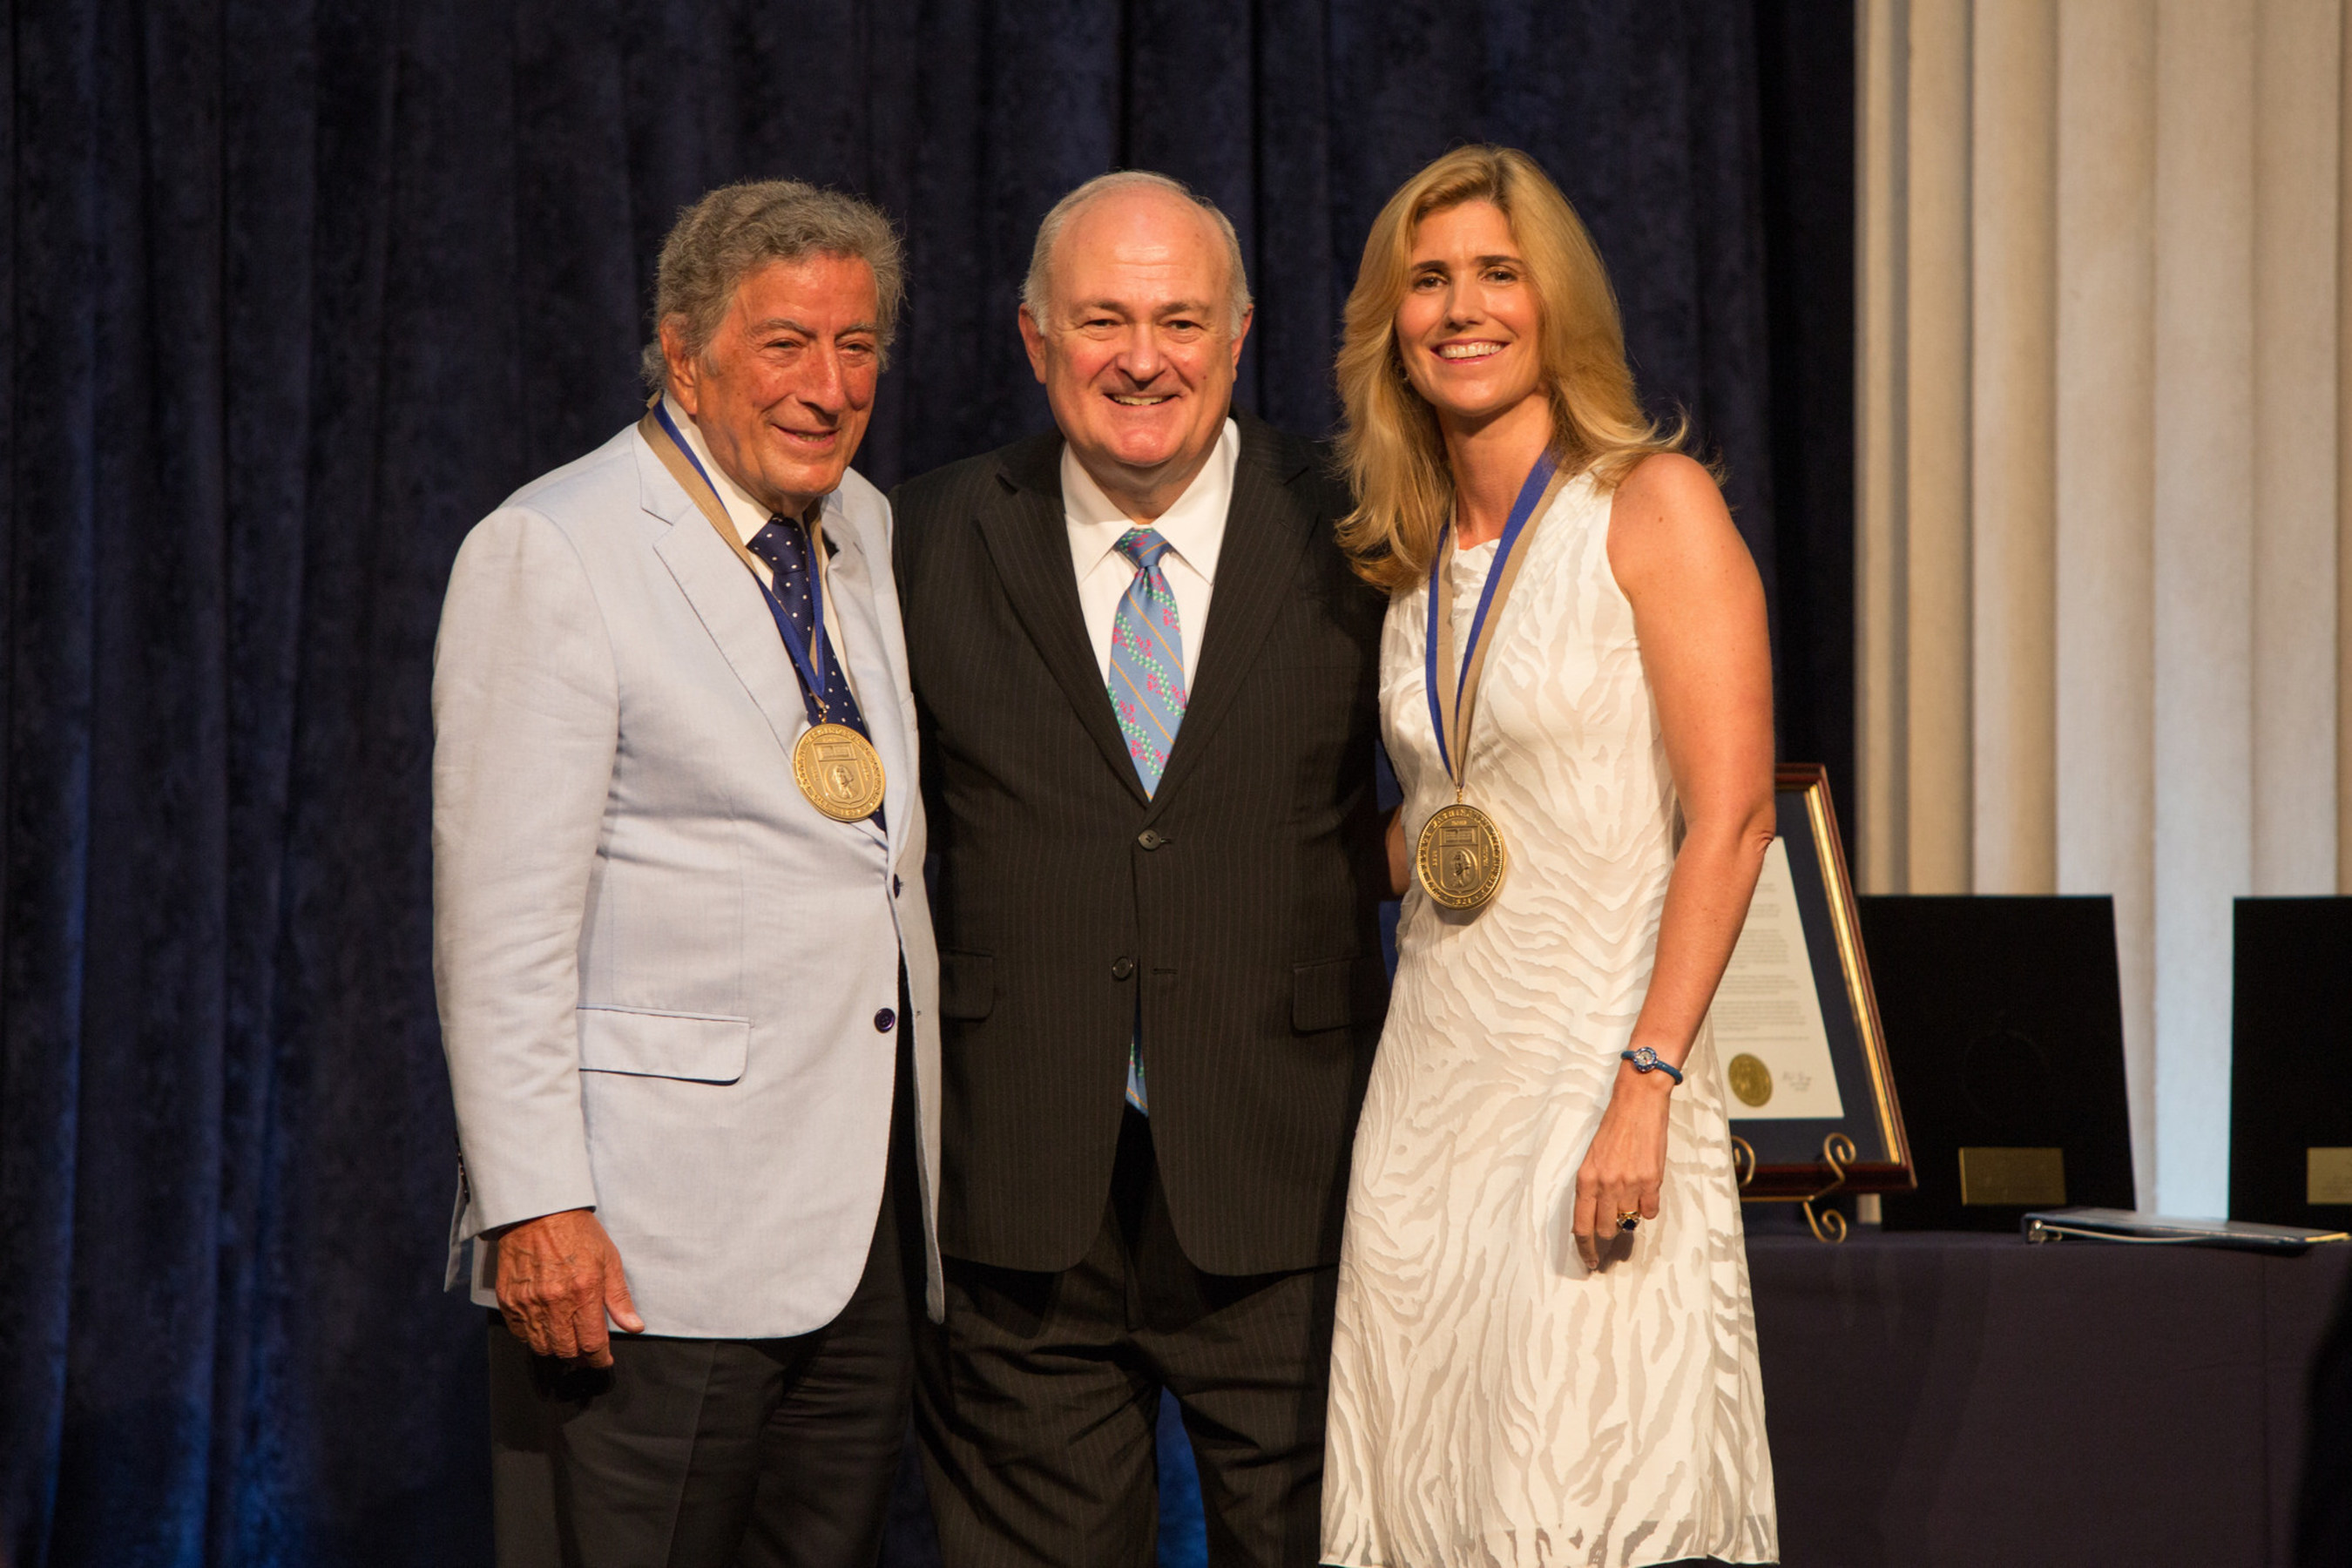 Tony Bennett and his wife Susan Benedetto honored by George Washington University for their commitment to the Arts. (l-r) Bennett, GW President Steven Knapp and Benedetto.